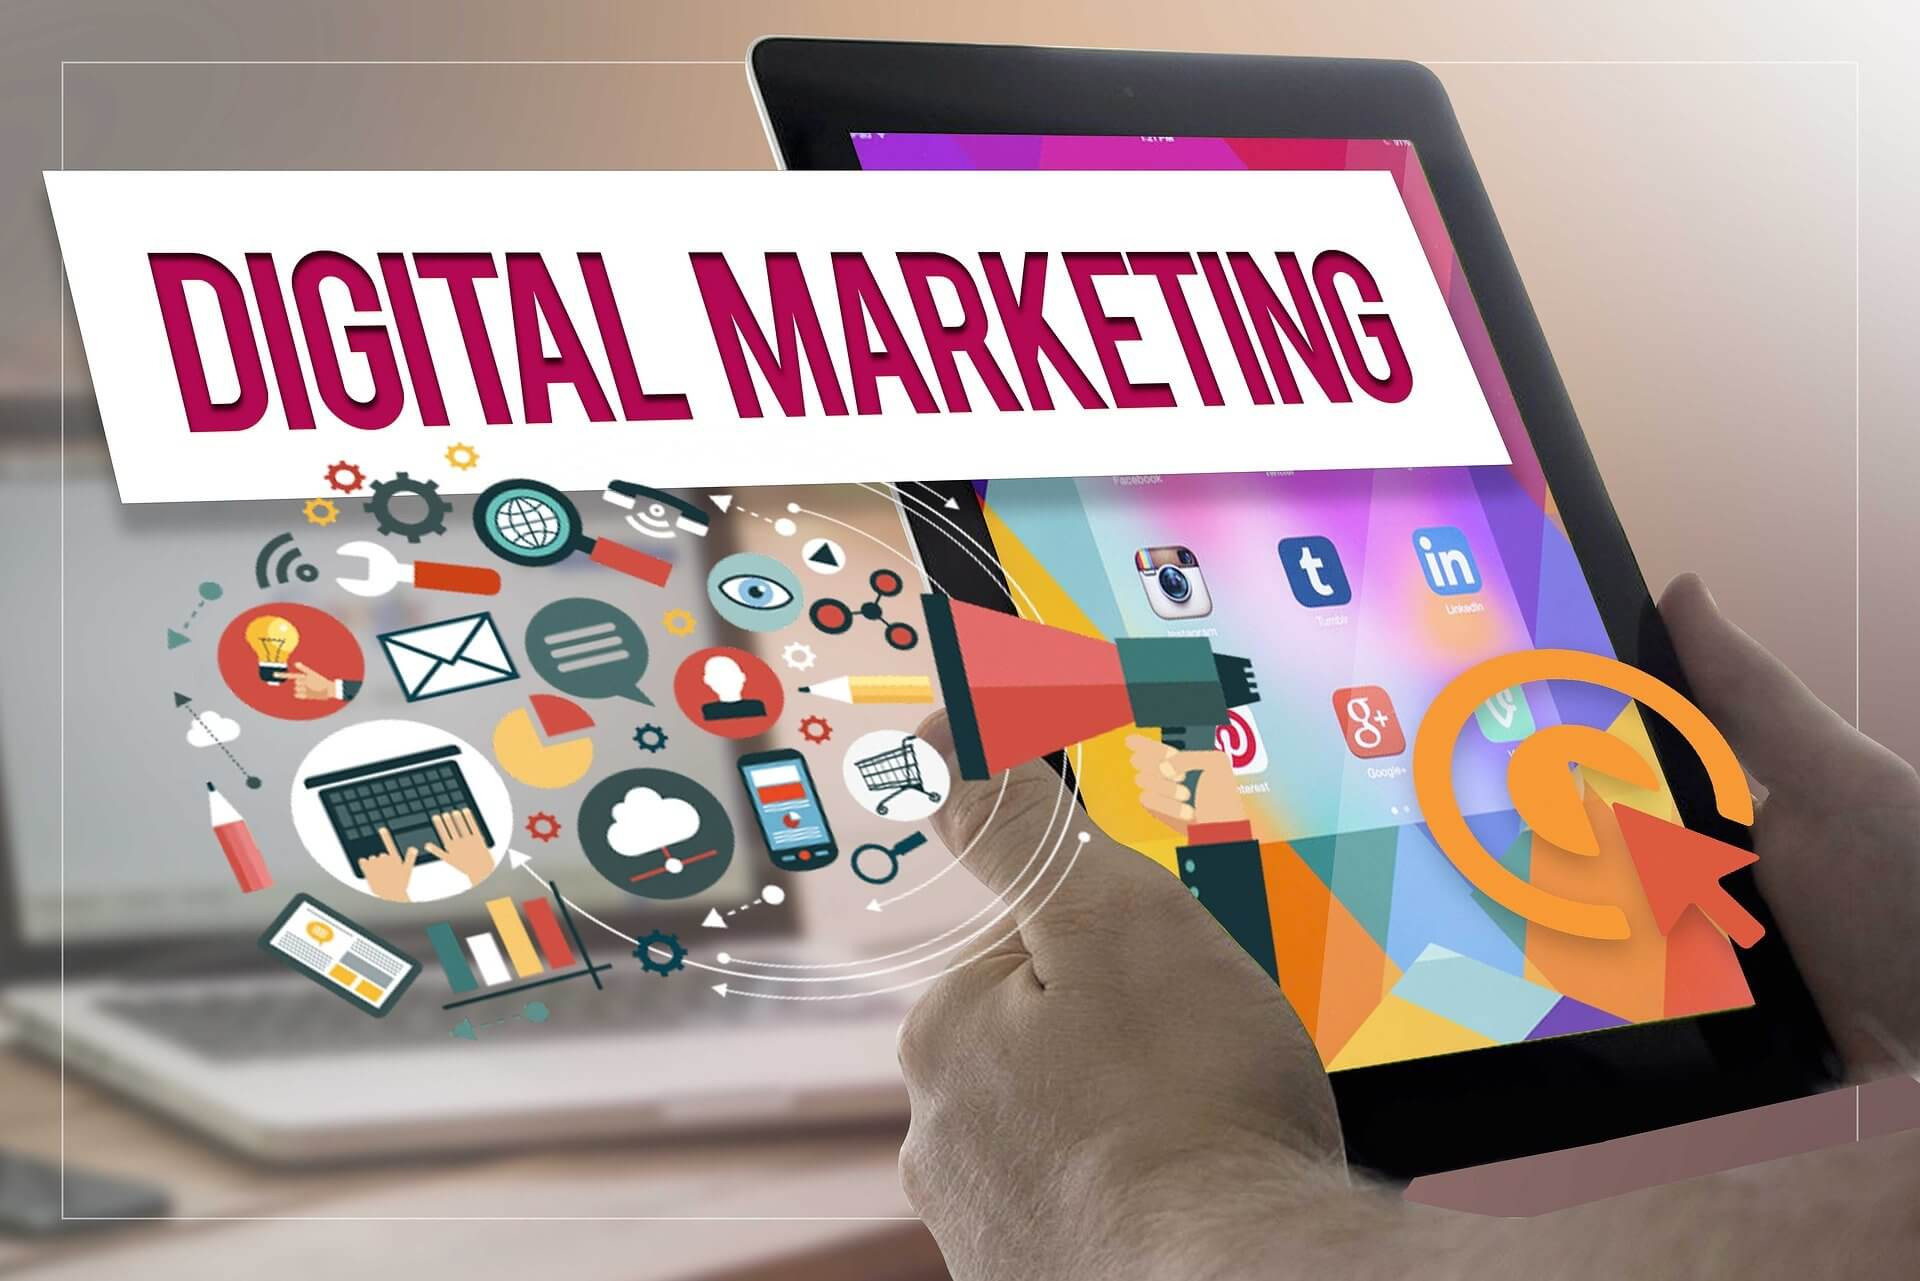 Digital marketings 1 - A Look At Online Platforms And Tools Which Help Your Digital Marketing Agency To Increase Your Clients' ROI